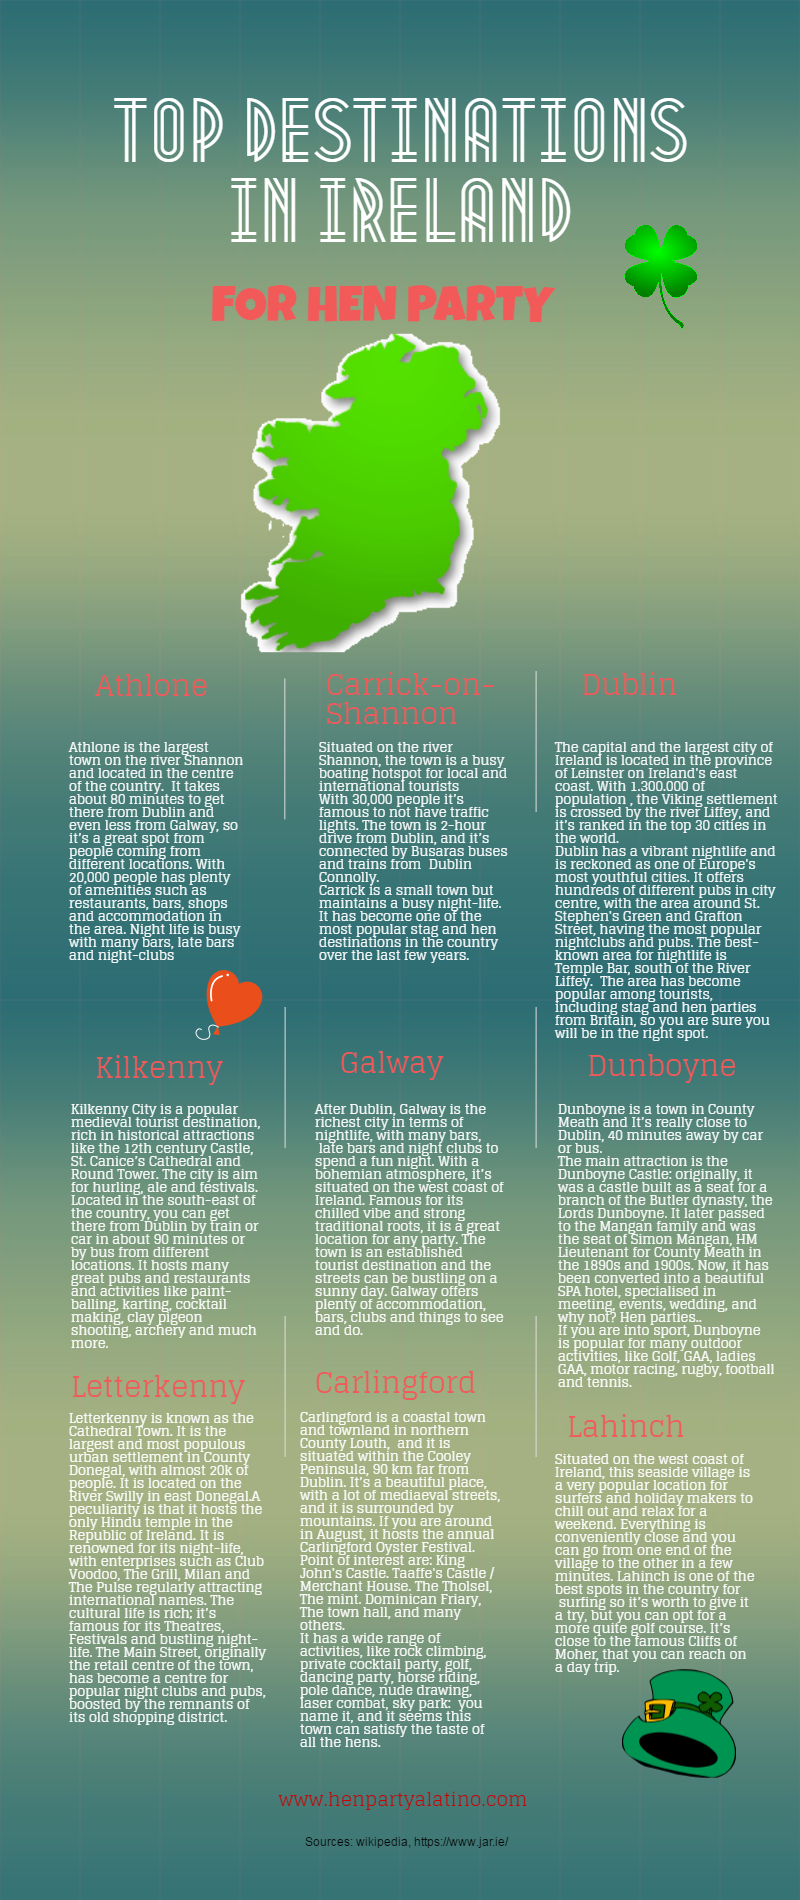 top destination for hen party in ireland Infographic